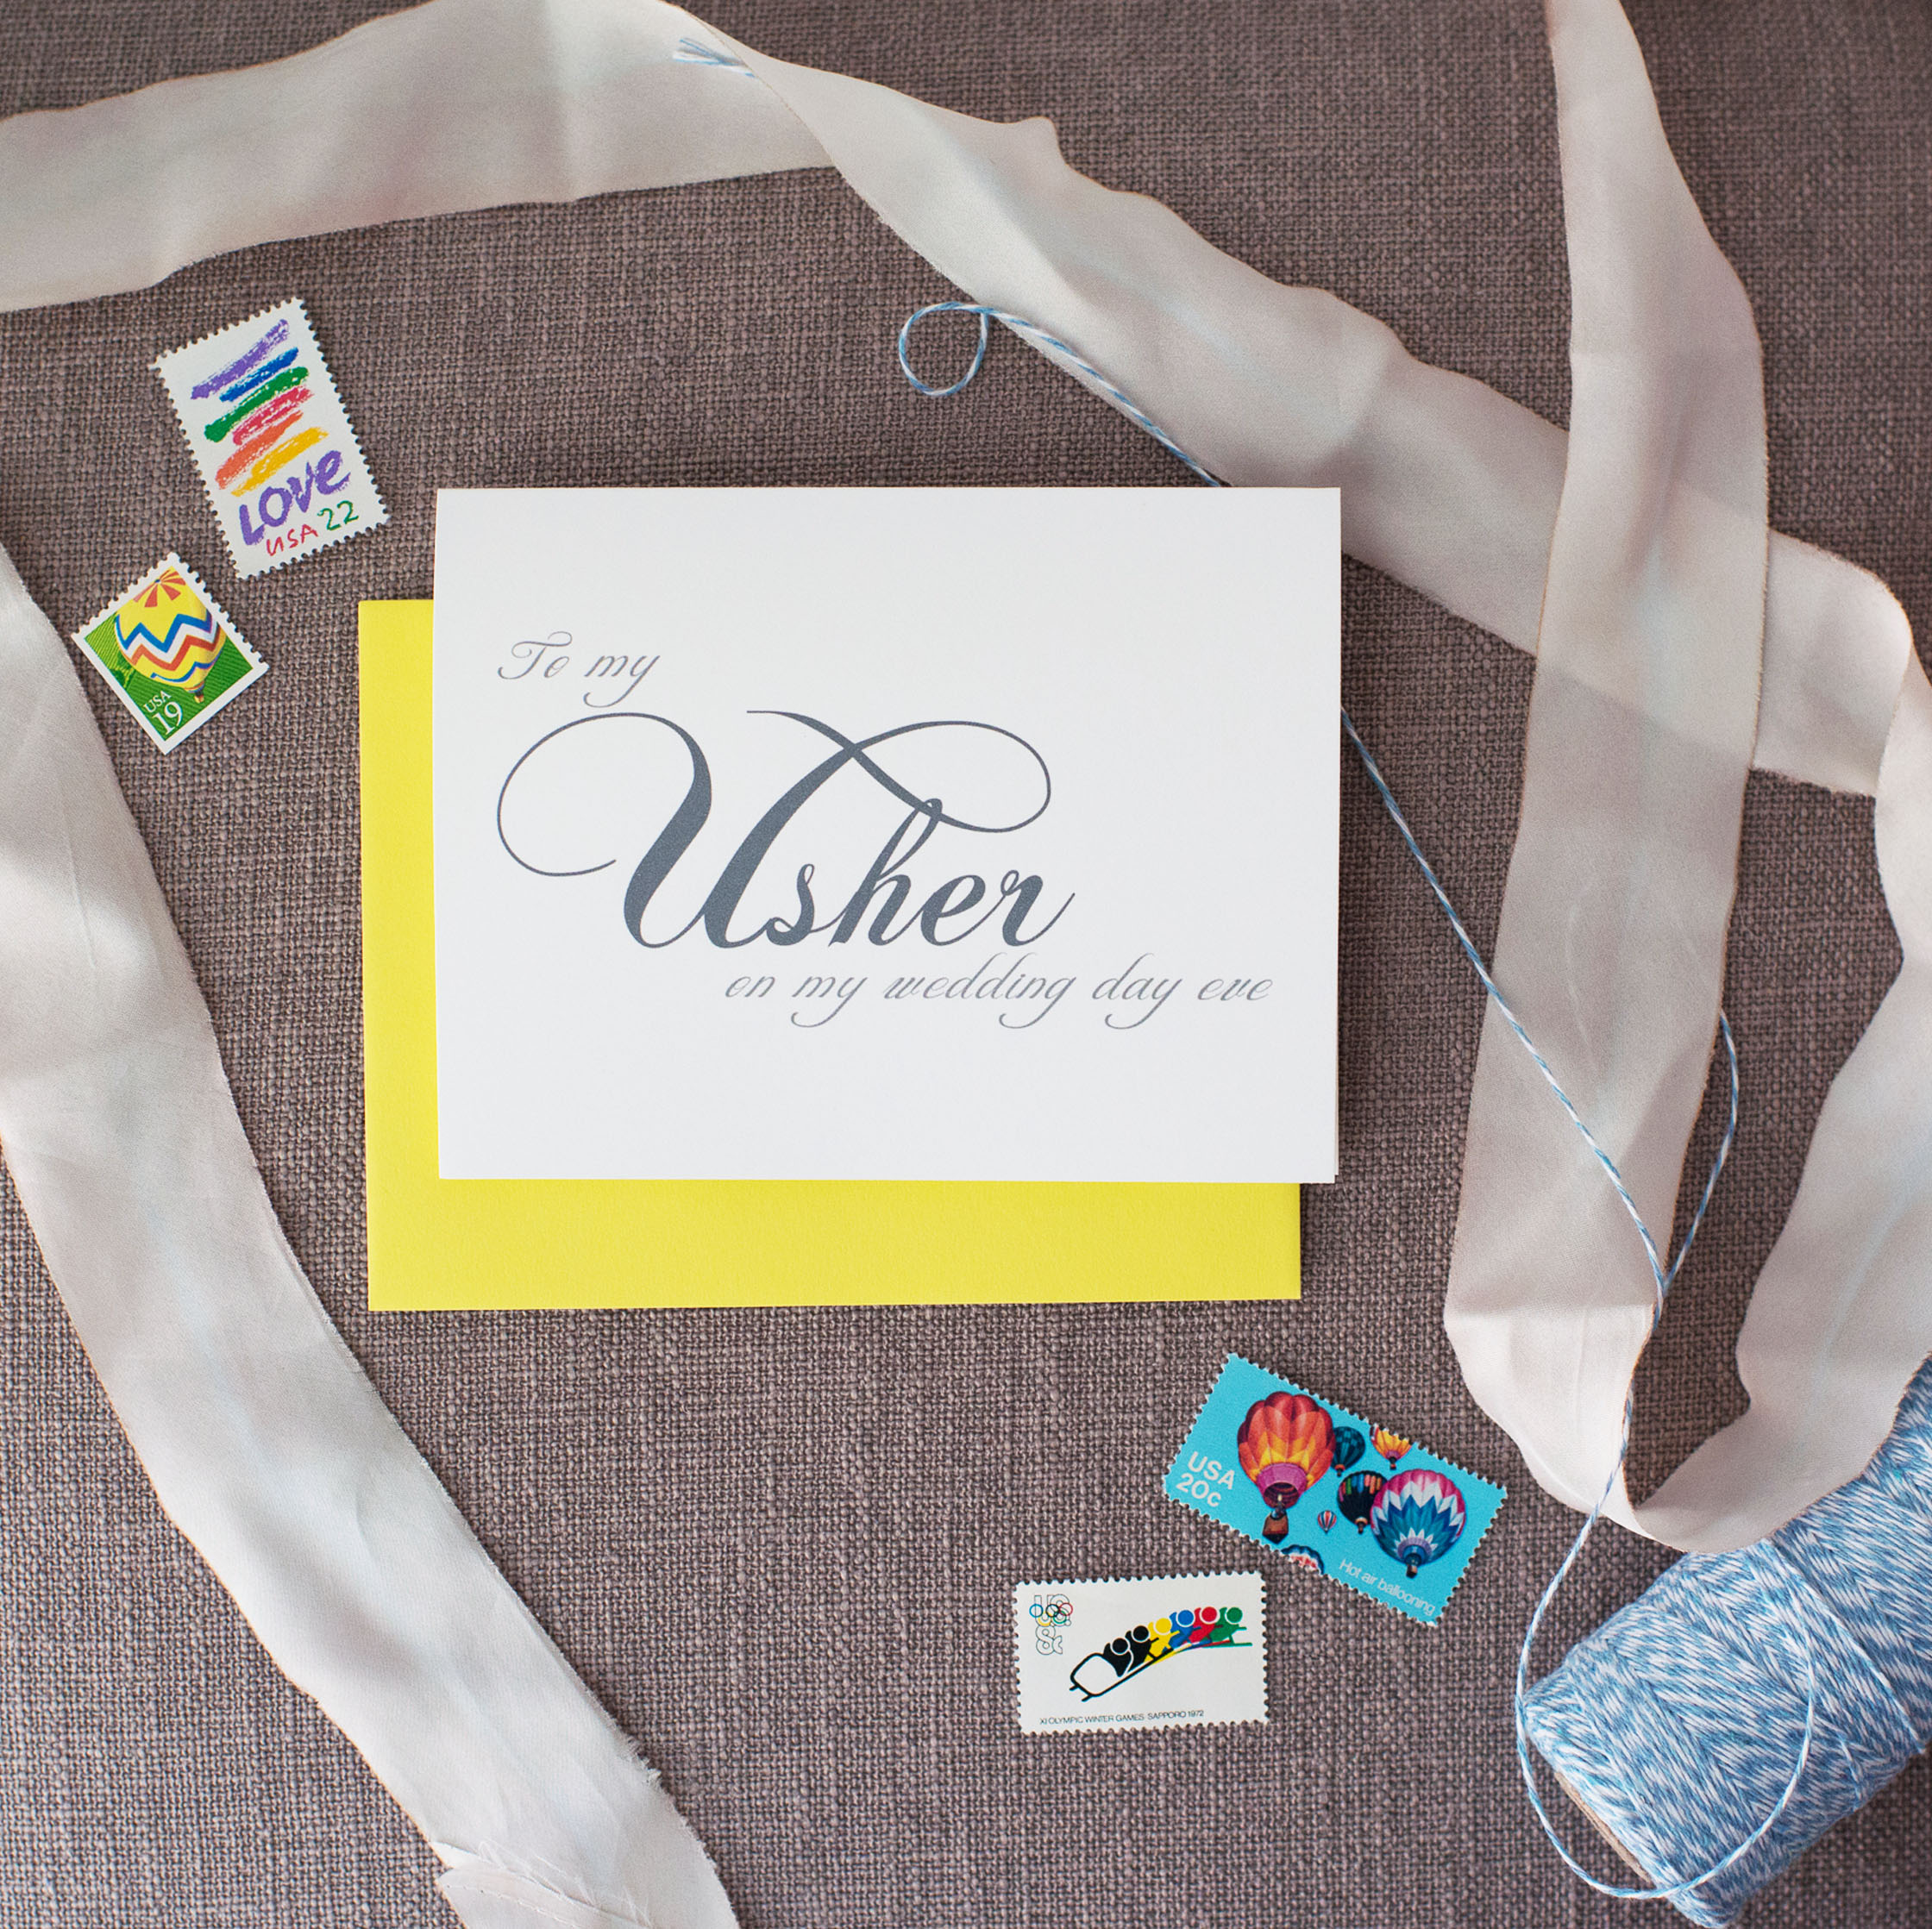 To My Usher On My Wedding Day Eve Card